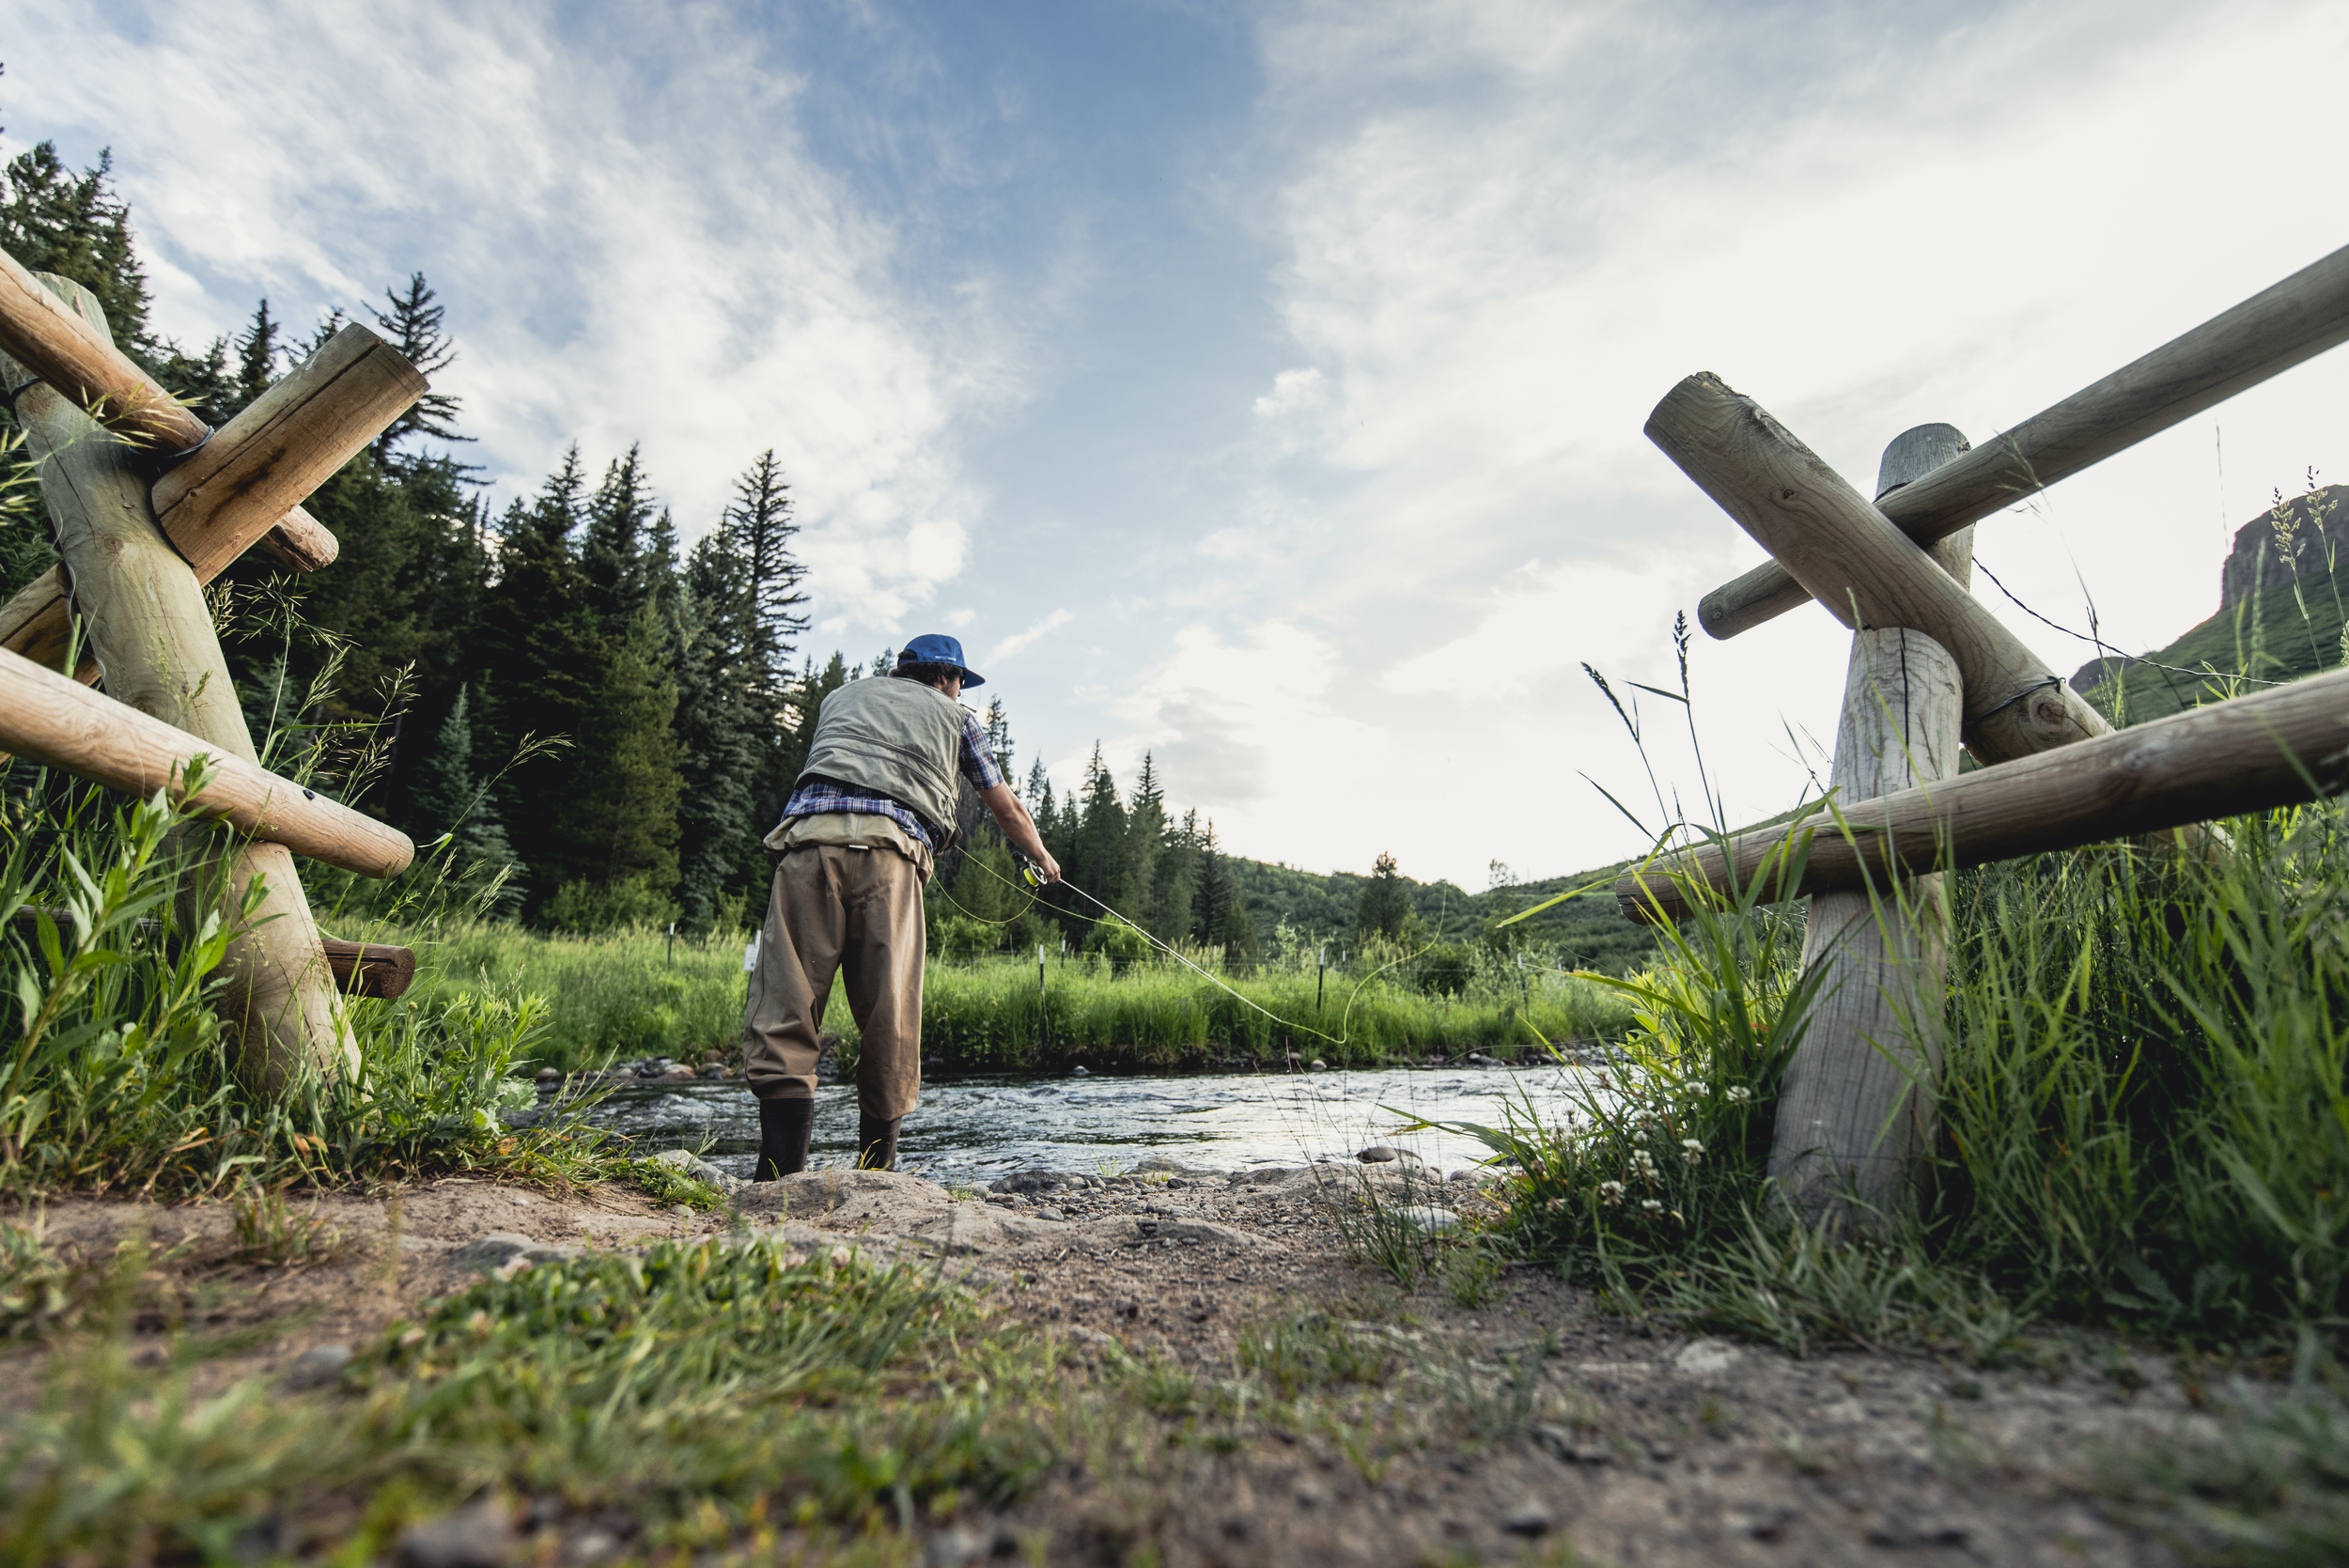 Fly Fishing off the Yampa